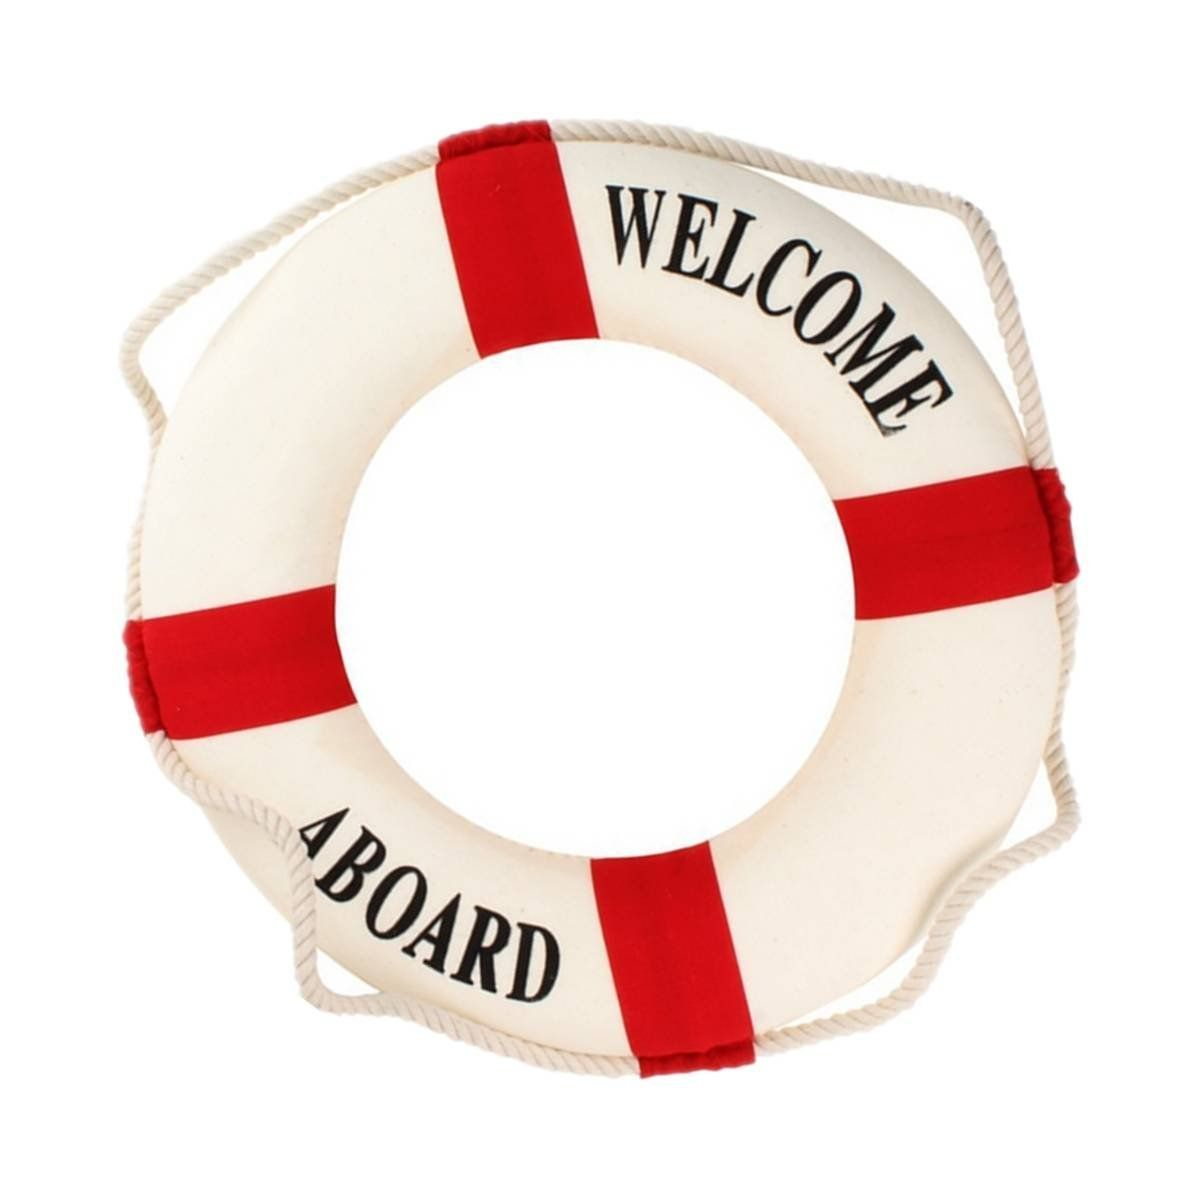 Welcome aboard lifering clipart clip art royalty free download Welcome Aboard Foam Nautical Life Lifebuoy Ring Boat Wall ... clip art royalty free download